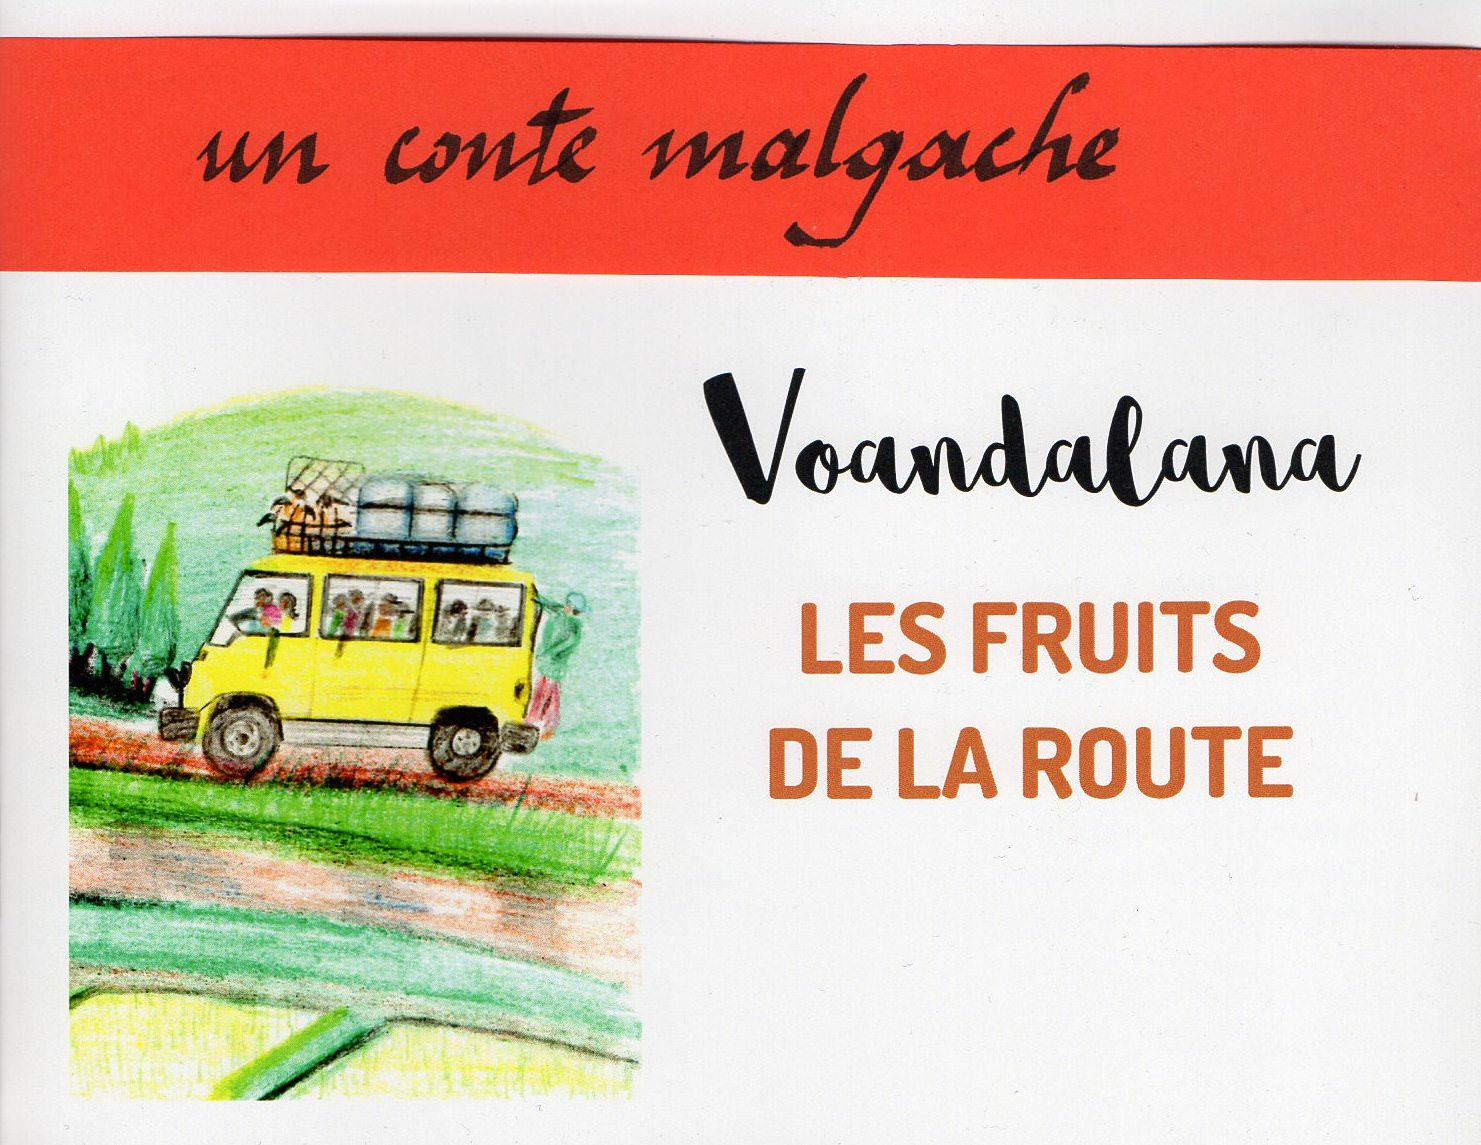 Les fruits de la route